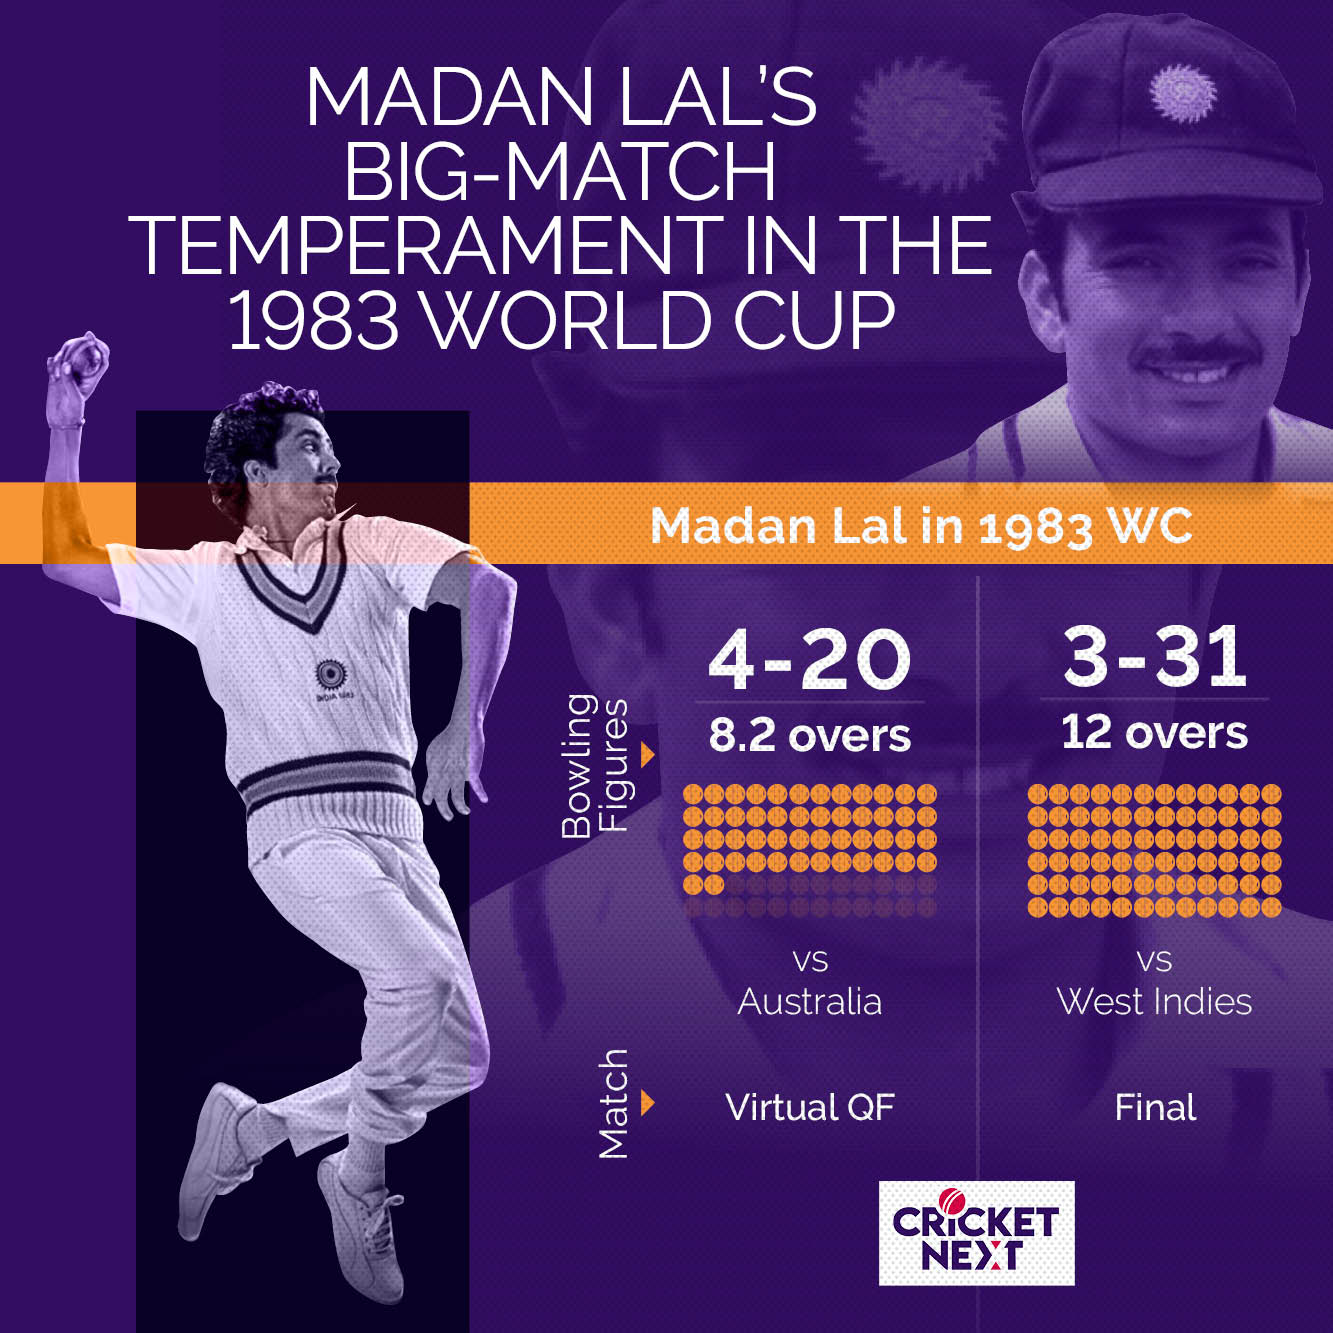 1983 WORLD CUP - INDIAN SUMMARY - Madan Lal